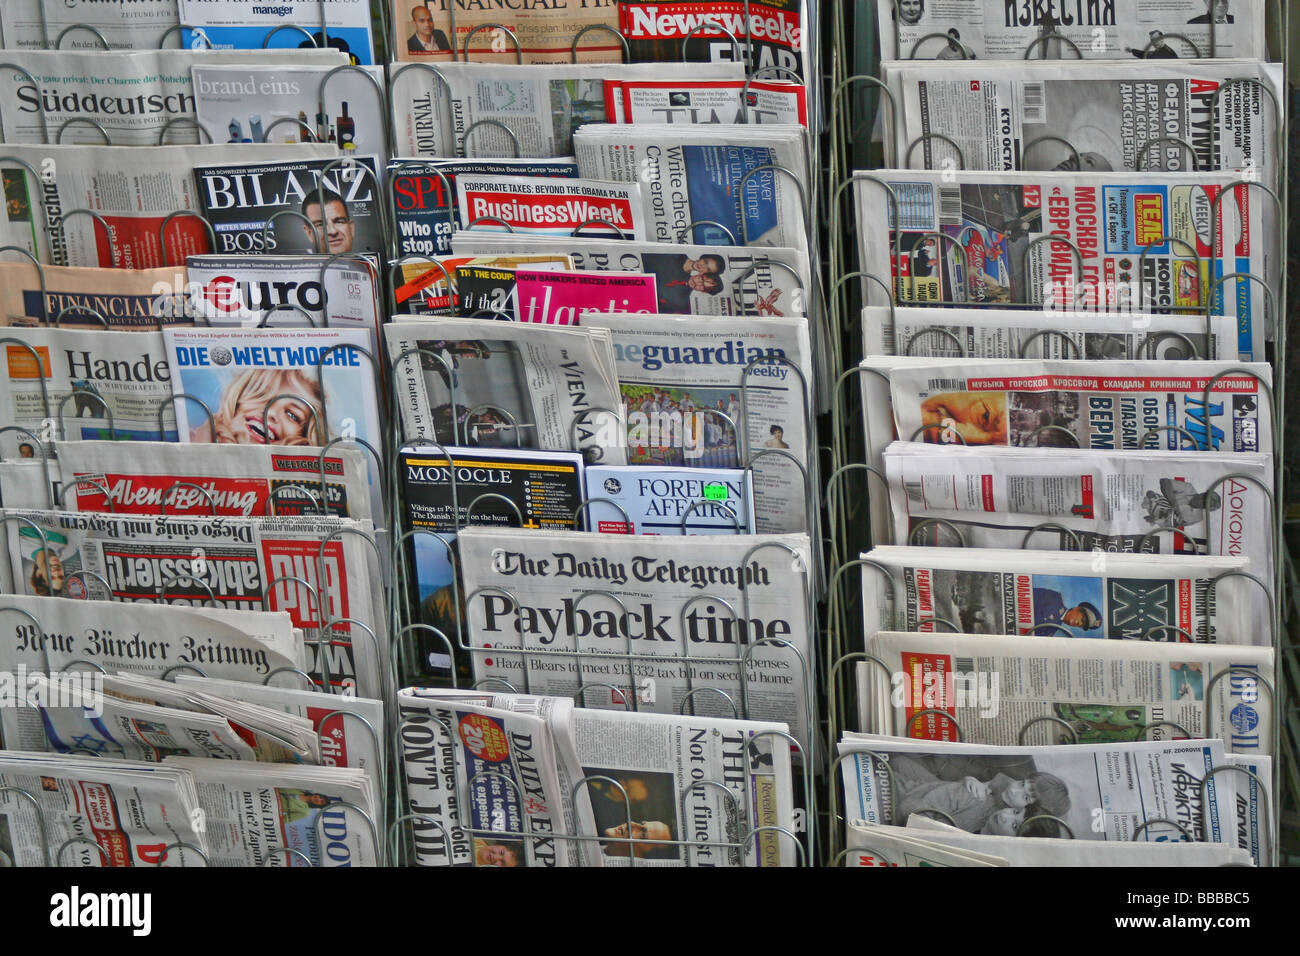 Newspaper stand - Stock Image